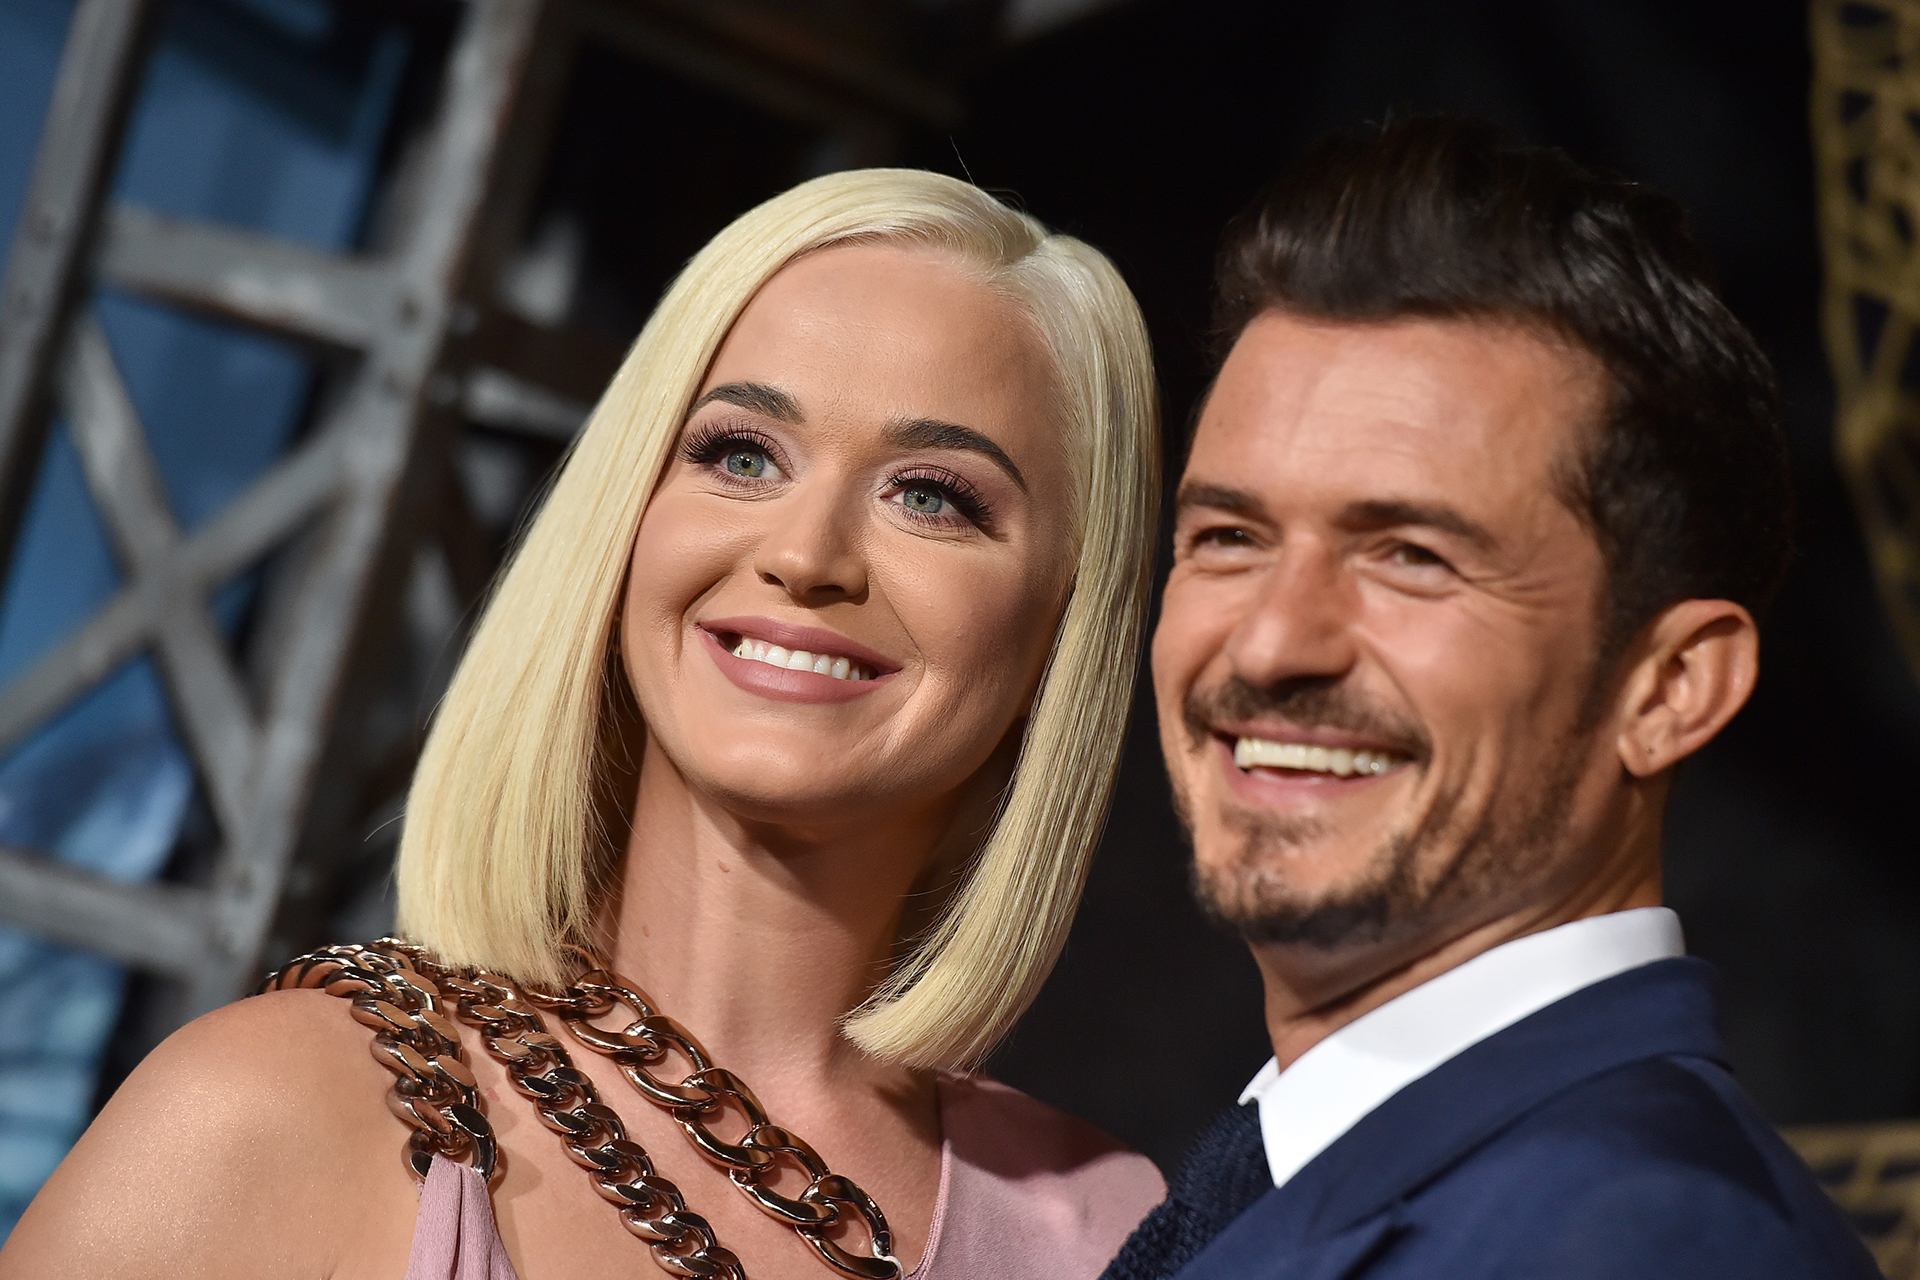 People Now: Everything We Know About Katy Perry and Orlando Bloom's Newborn Daughter Daisy Dove Bloom! - Watch the Full Episode